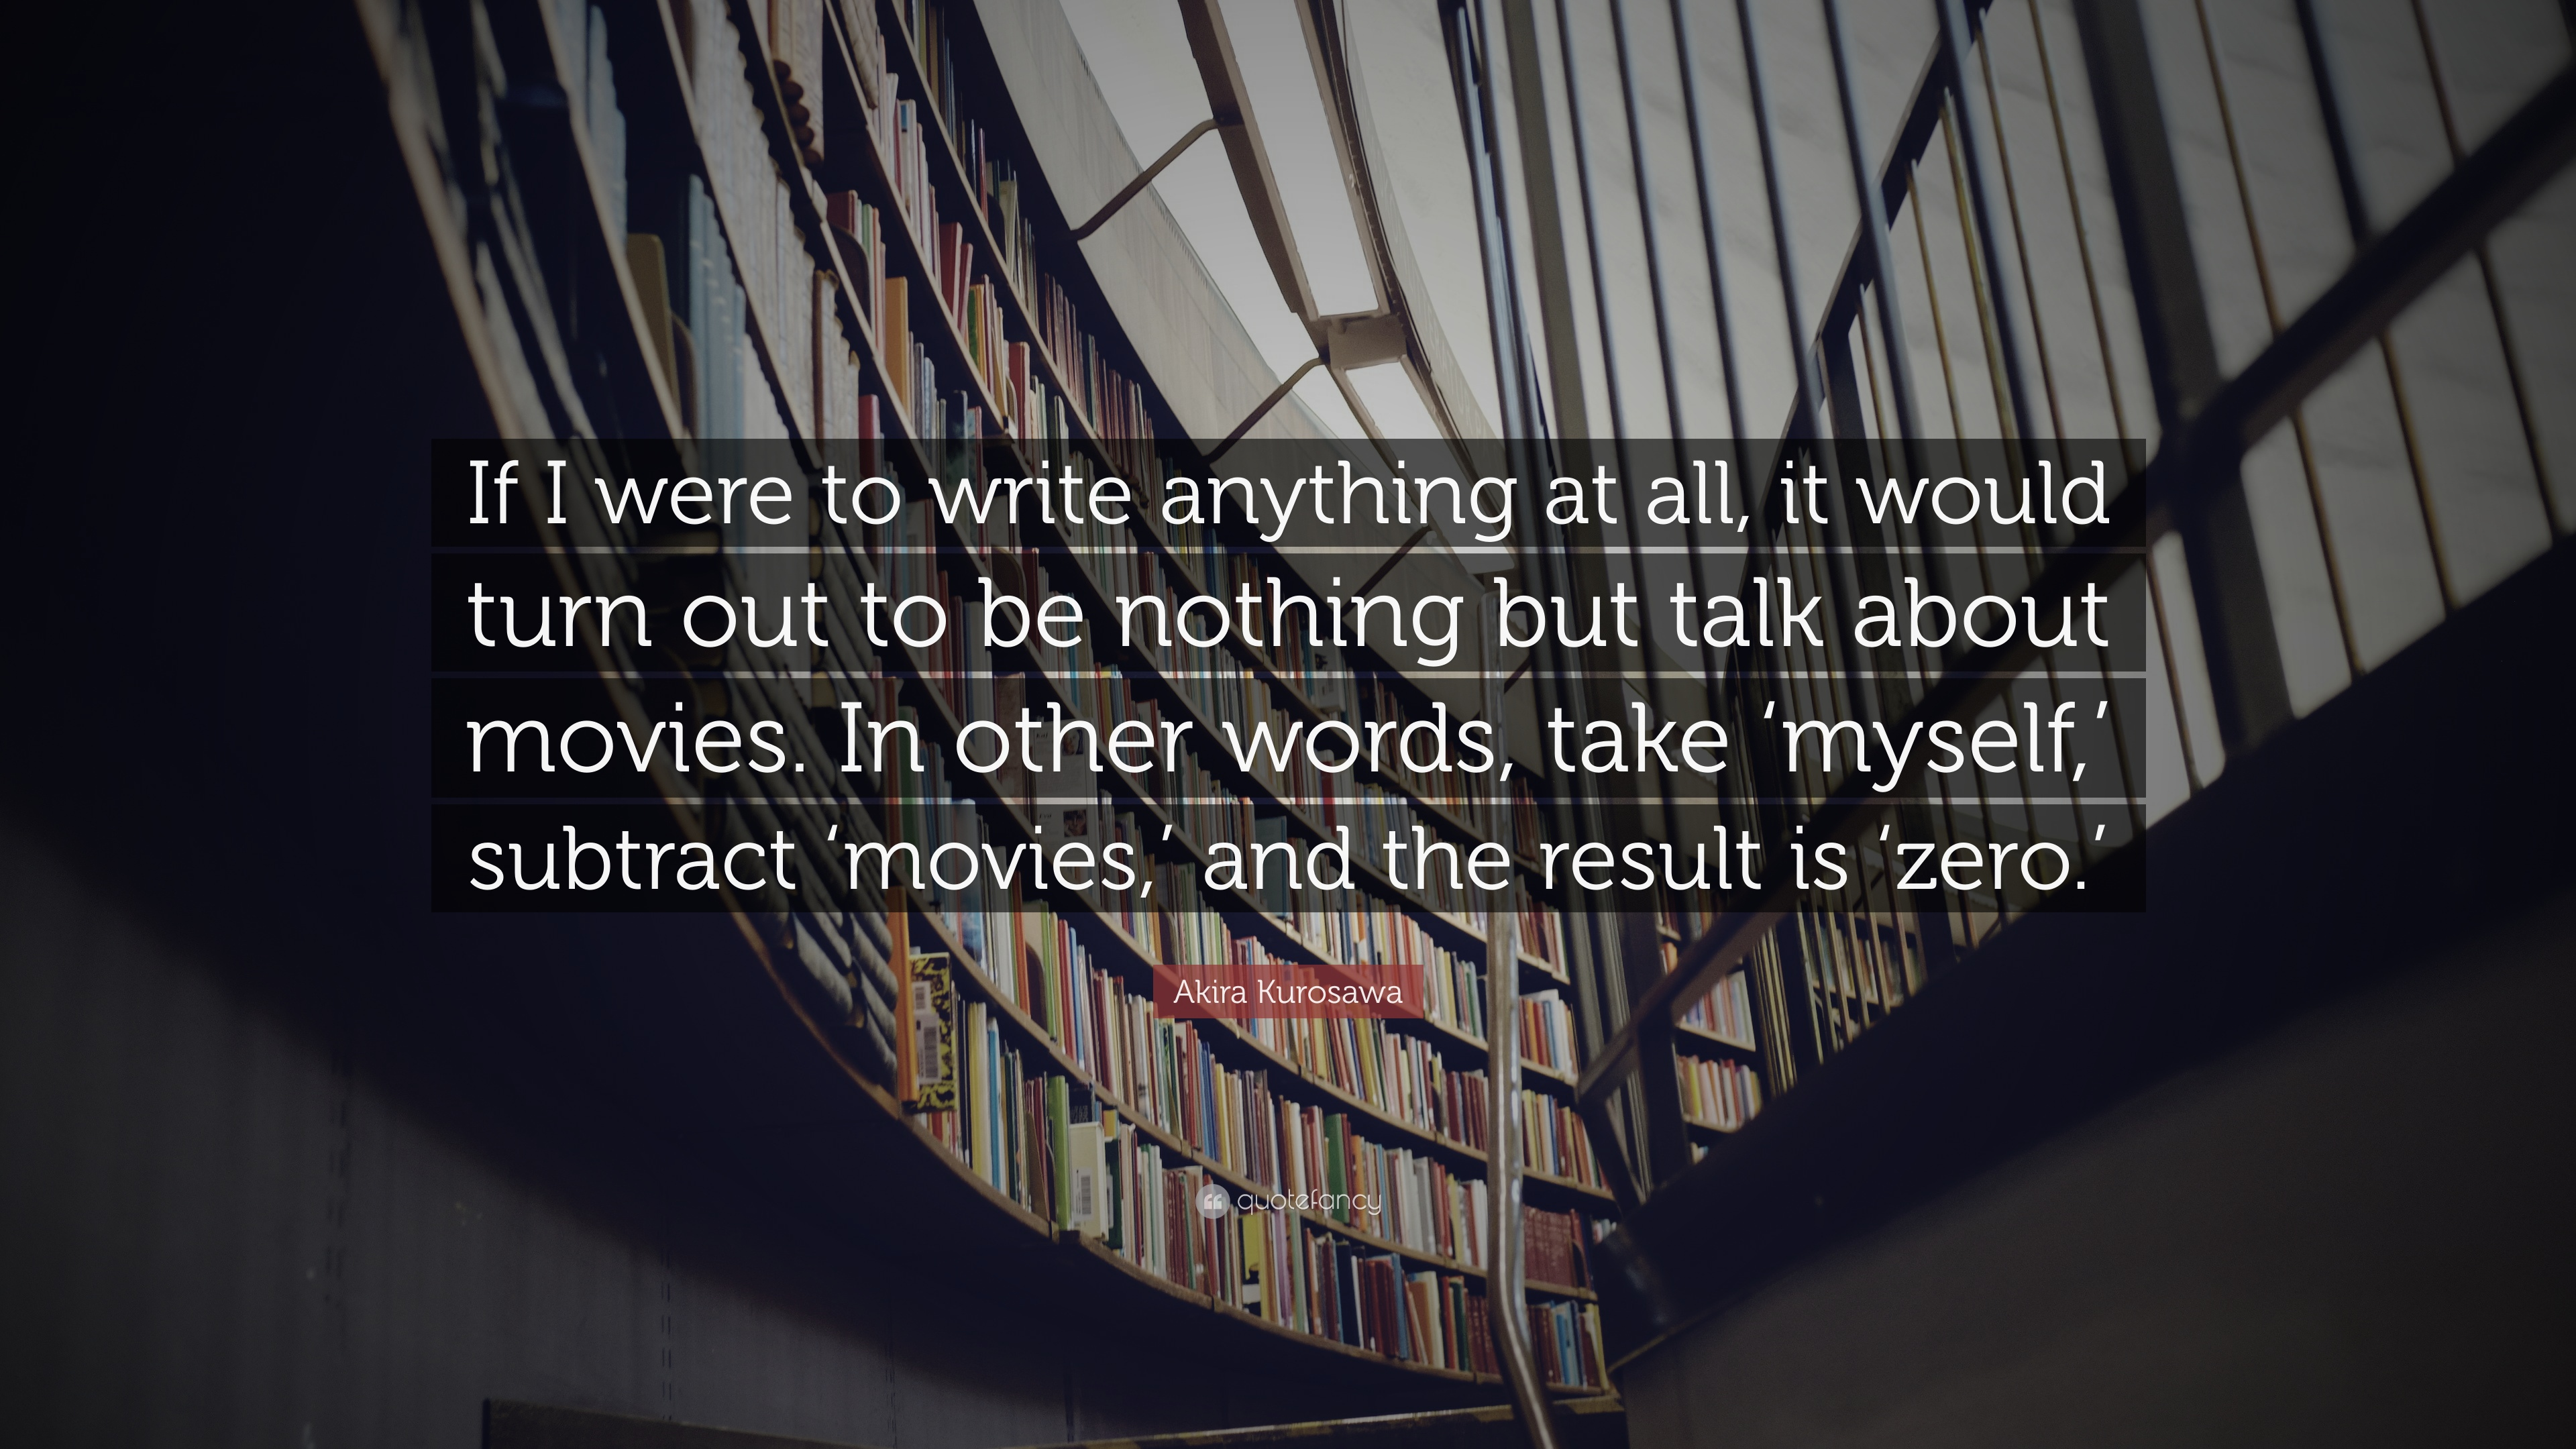 Akira Kurosawa Quote If I Were To Write Anything At All It Would Turn Out To Be Nothing But Talk About Movies In Other Words Take Myself 12 Wallpapers Quotefancy